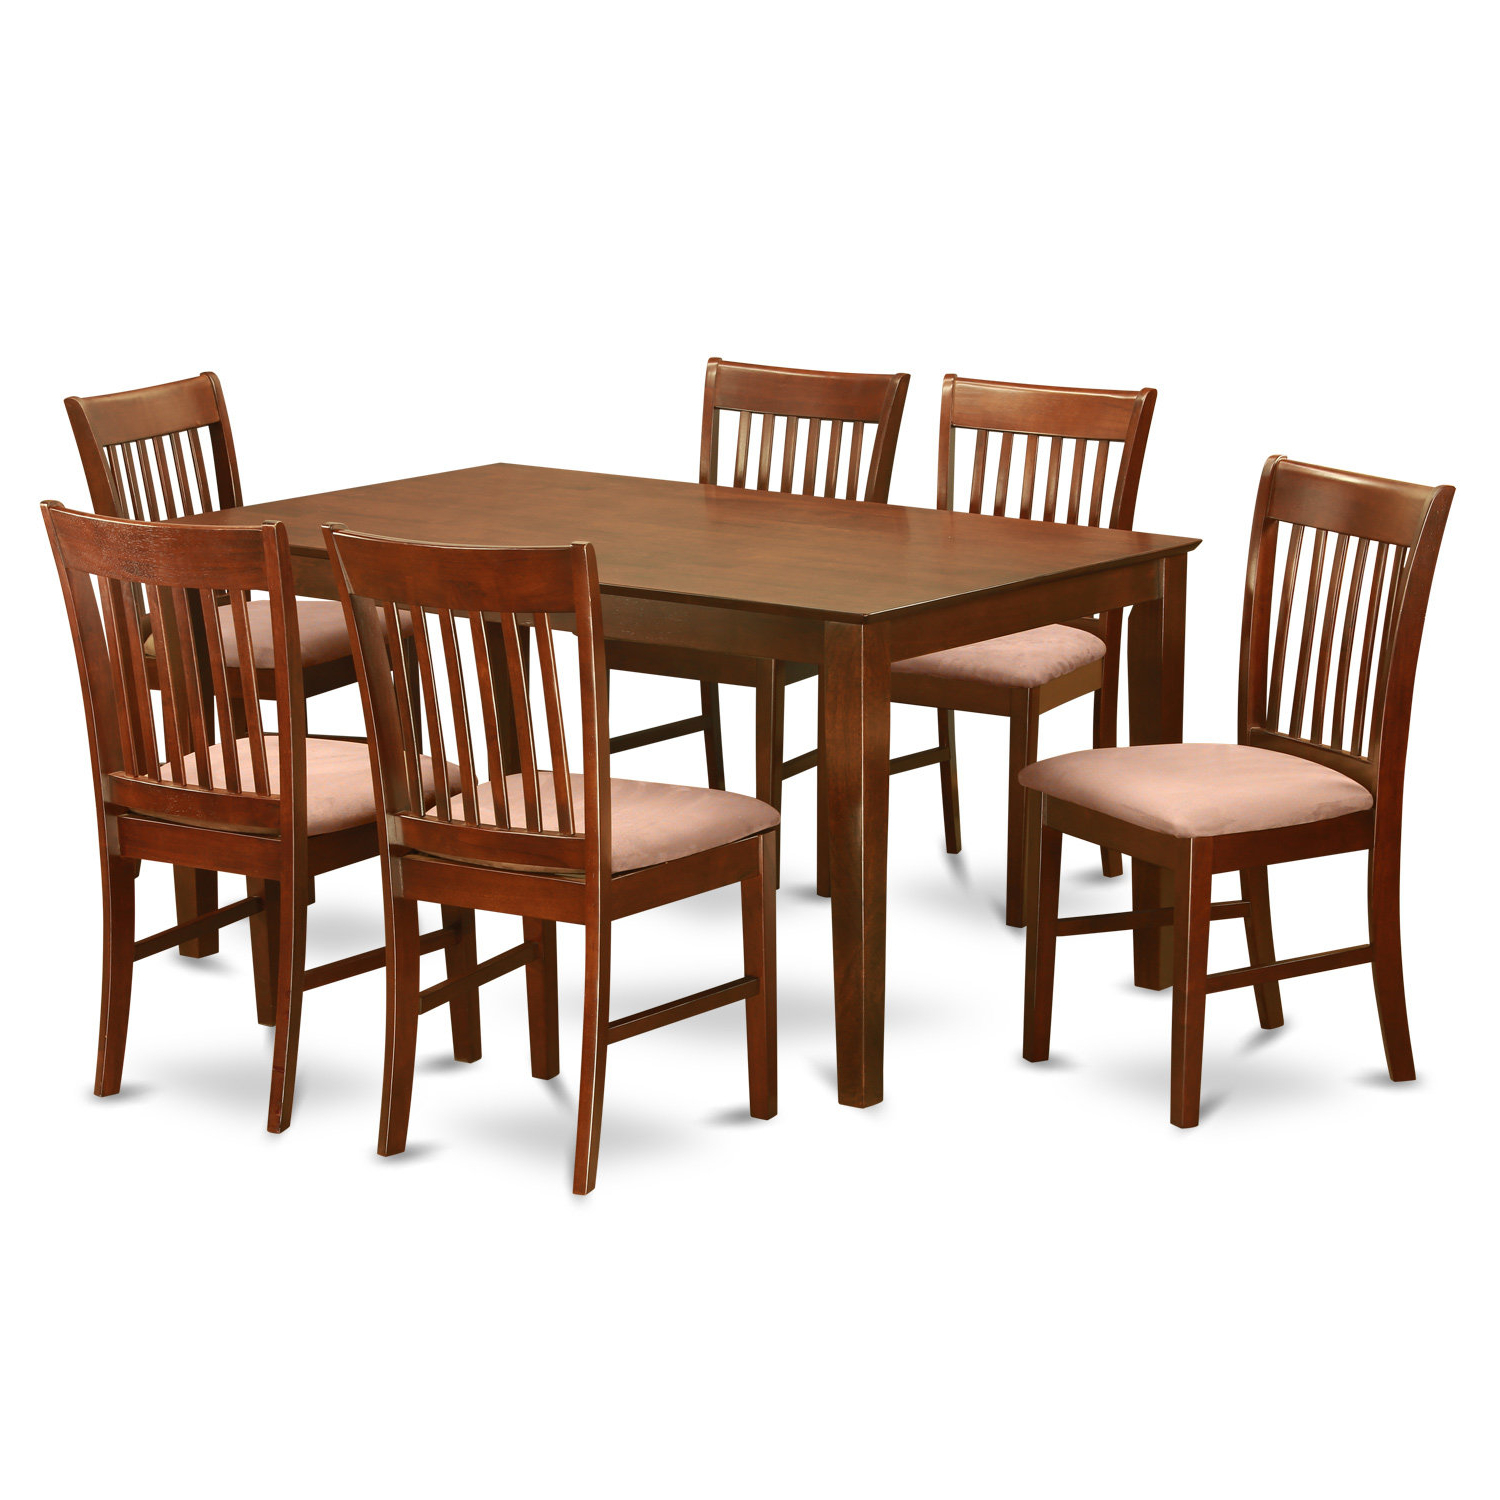 Smyrna 7 Piece Dining Set With Well Known Smyrna 3 Piece Dining Sets (View 19 of 20)